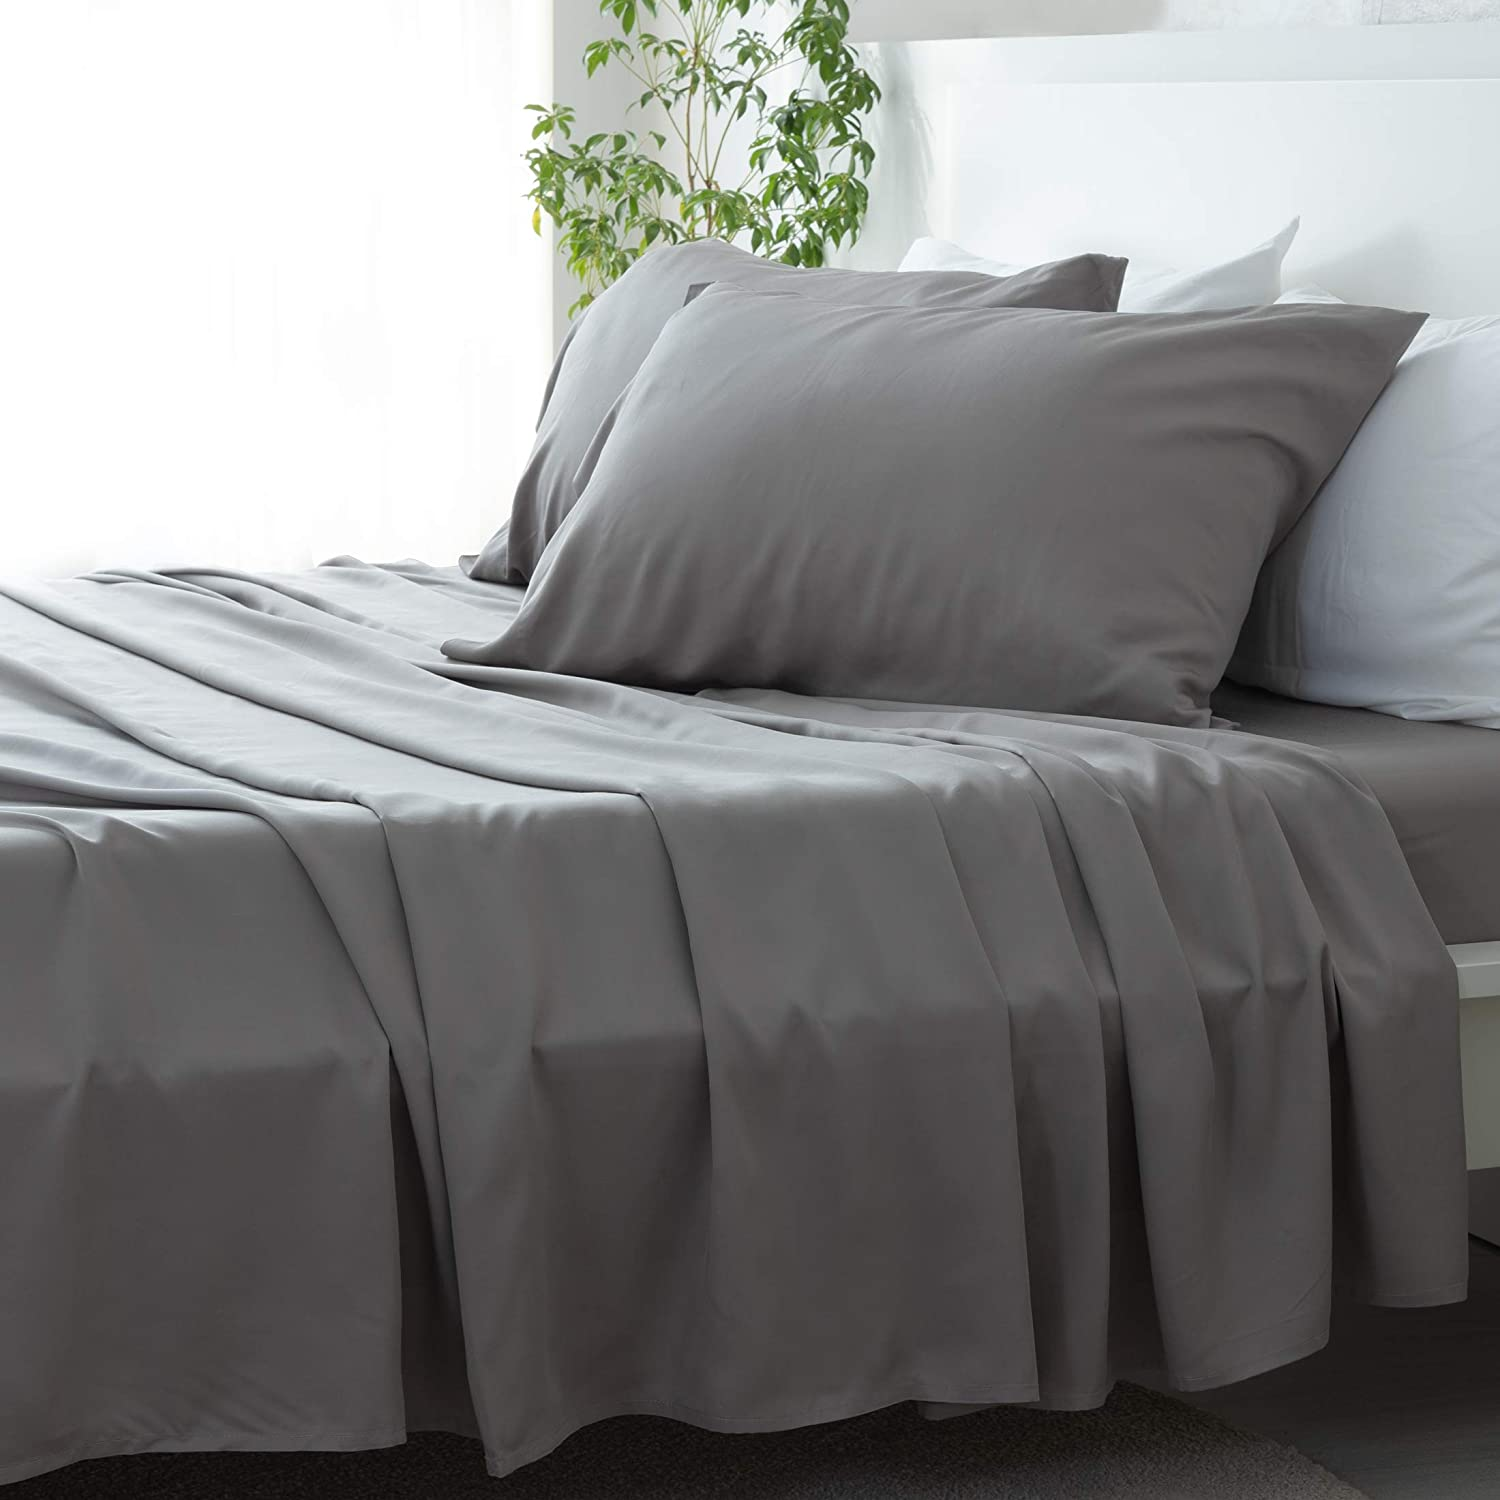 David's Home Pure Bamboo Sheets Set Twin Size Grey, 100% Bamboo Cooling Sheets Set with Deep Pocket, Silky Soft and Breathable Bedding Sheets Set, 4PCS , Hypoallergenic